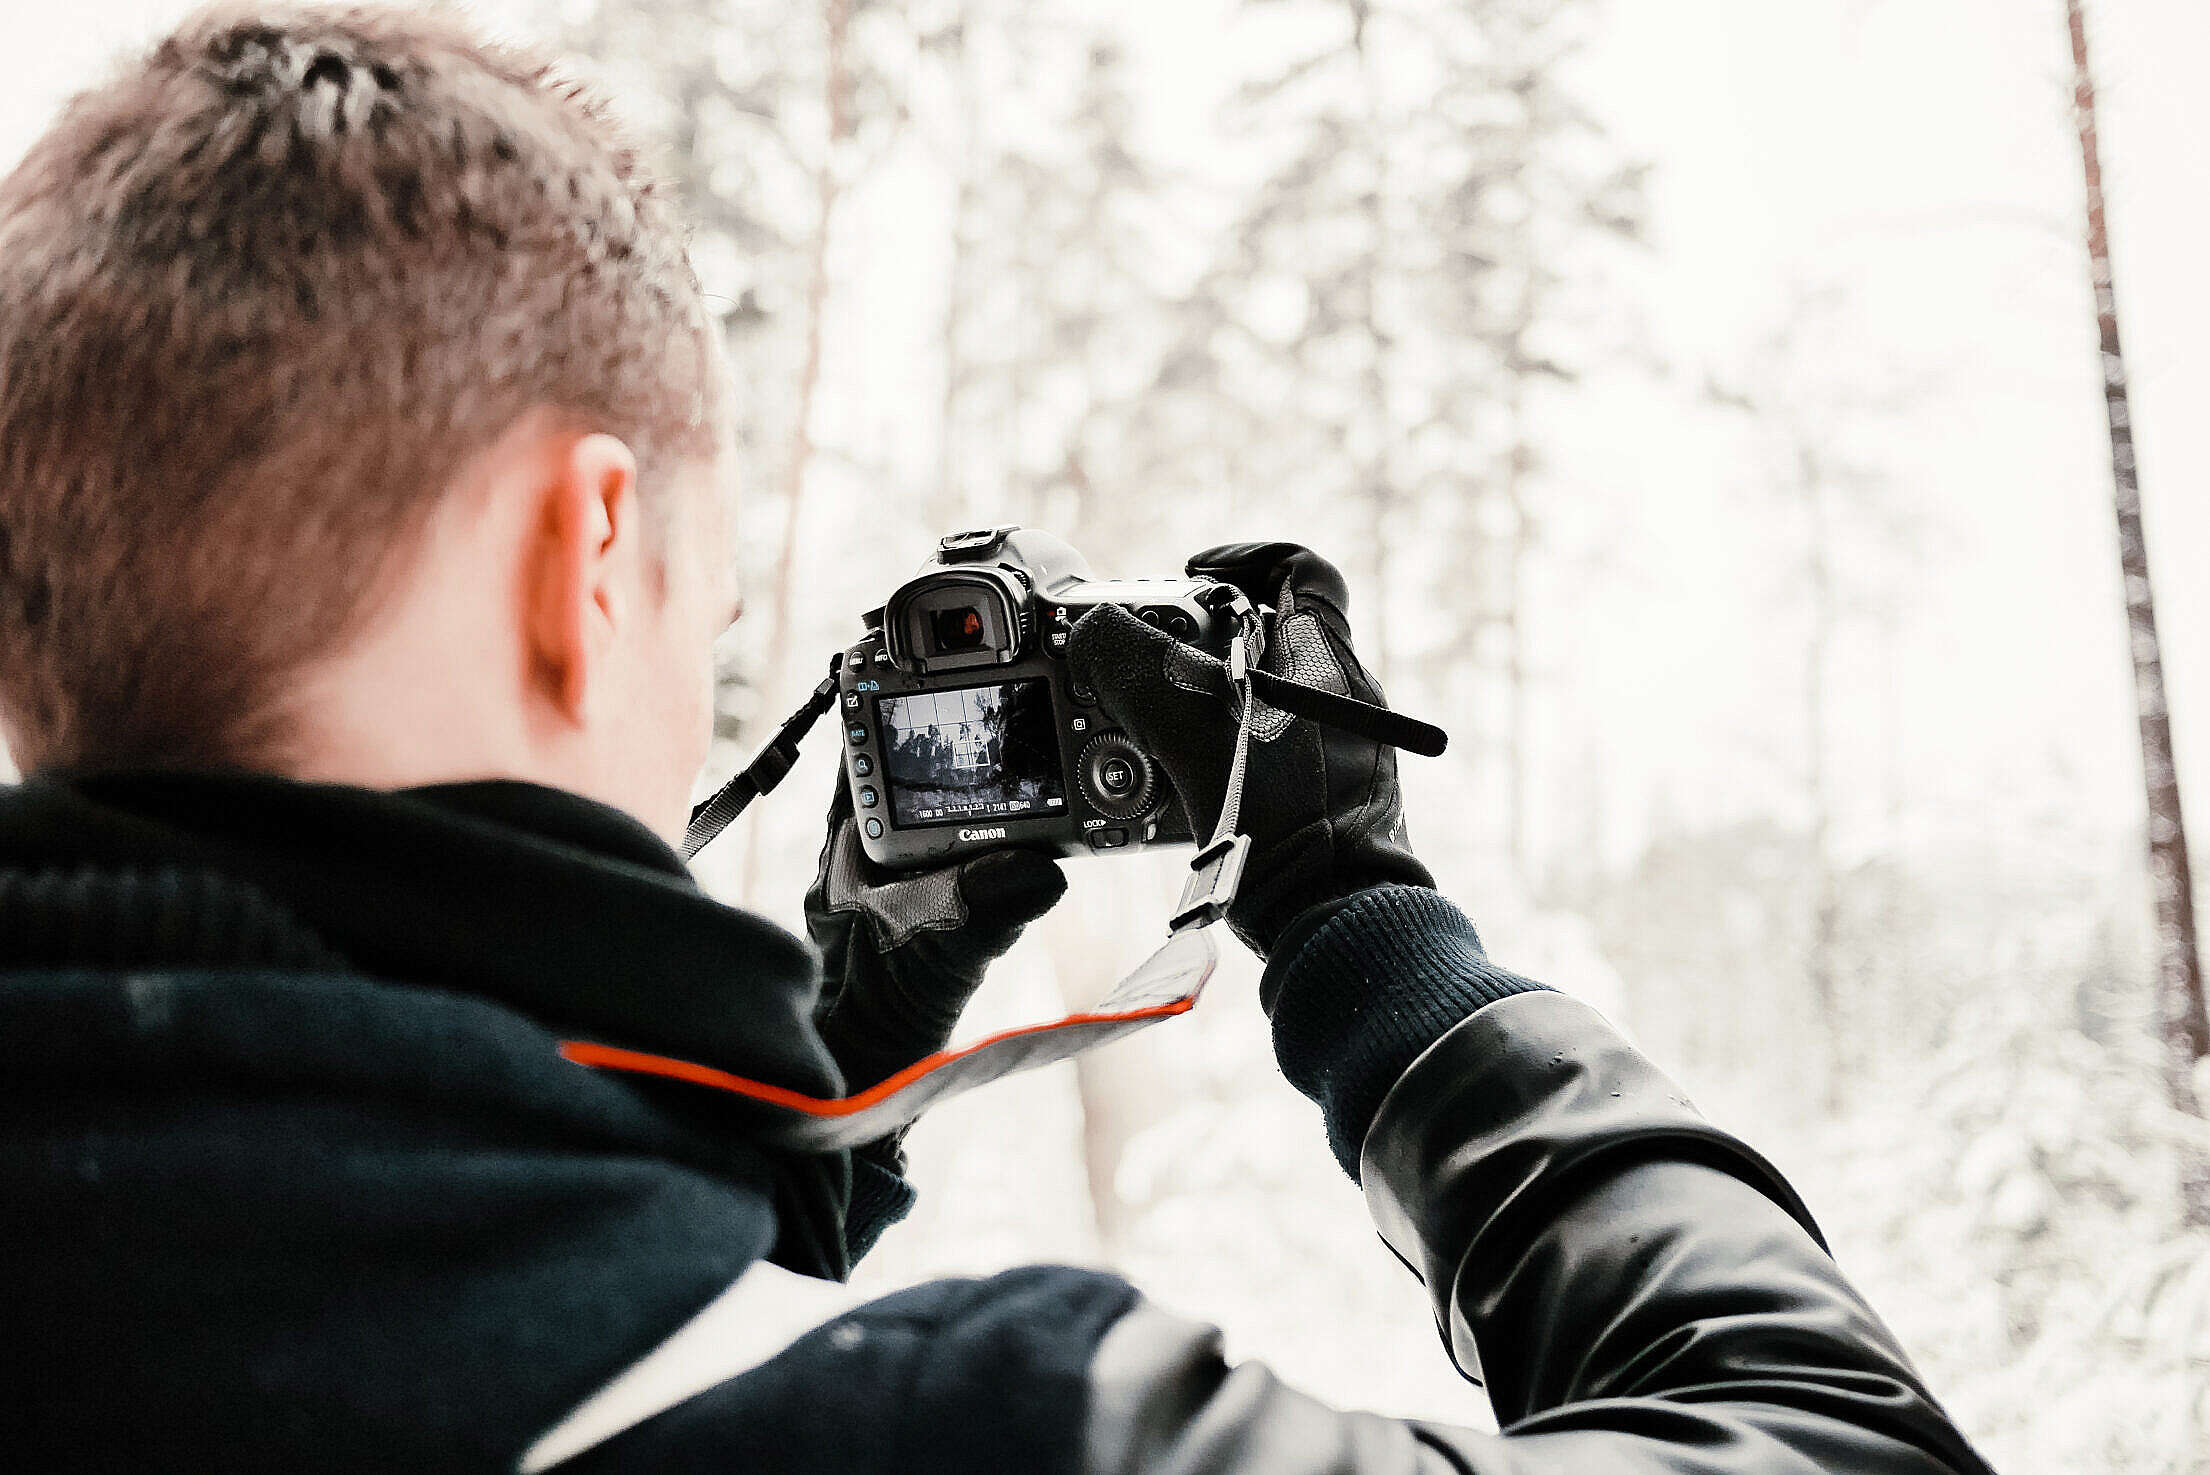 Photographer in Snowy Forest Taking Winter Photos Free Stock Photo